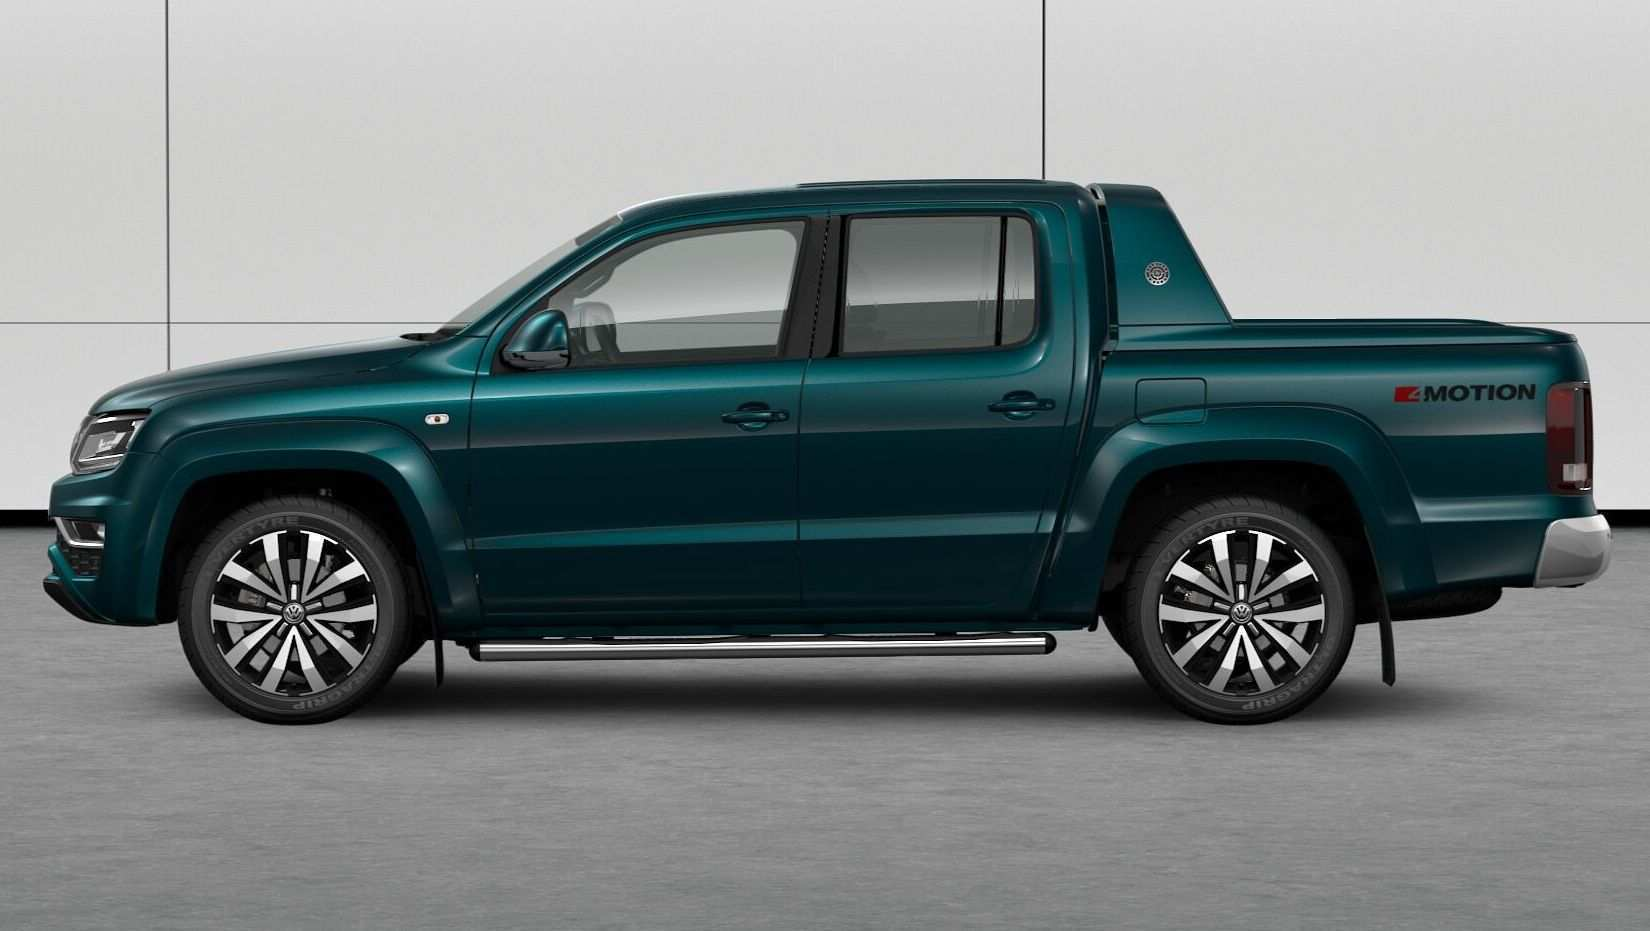 18 The Best 2020 VW Amarok Picture